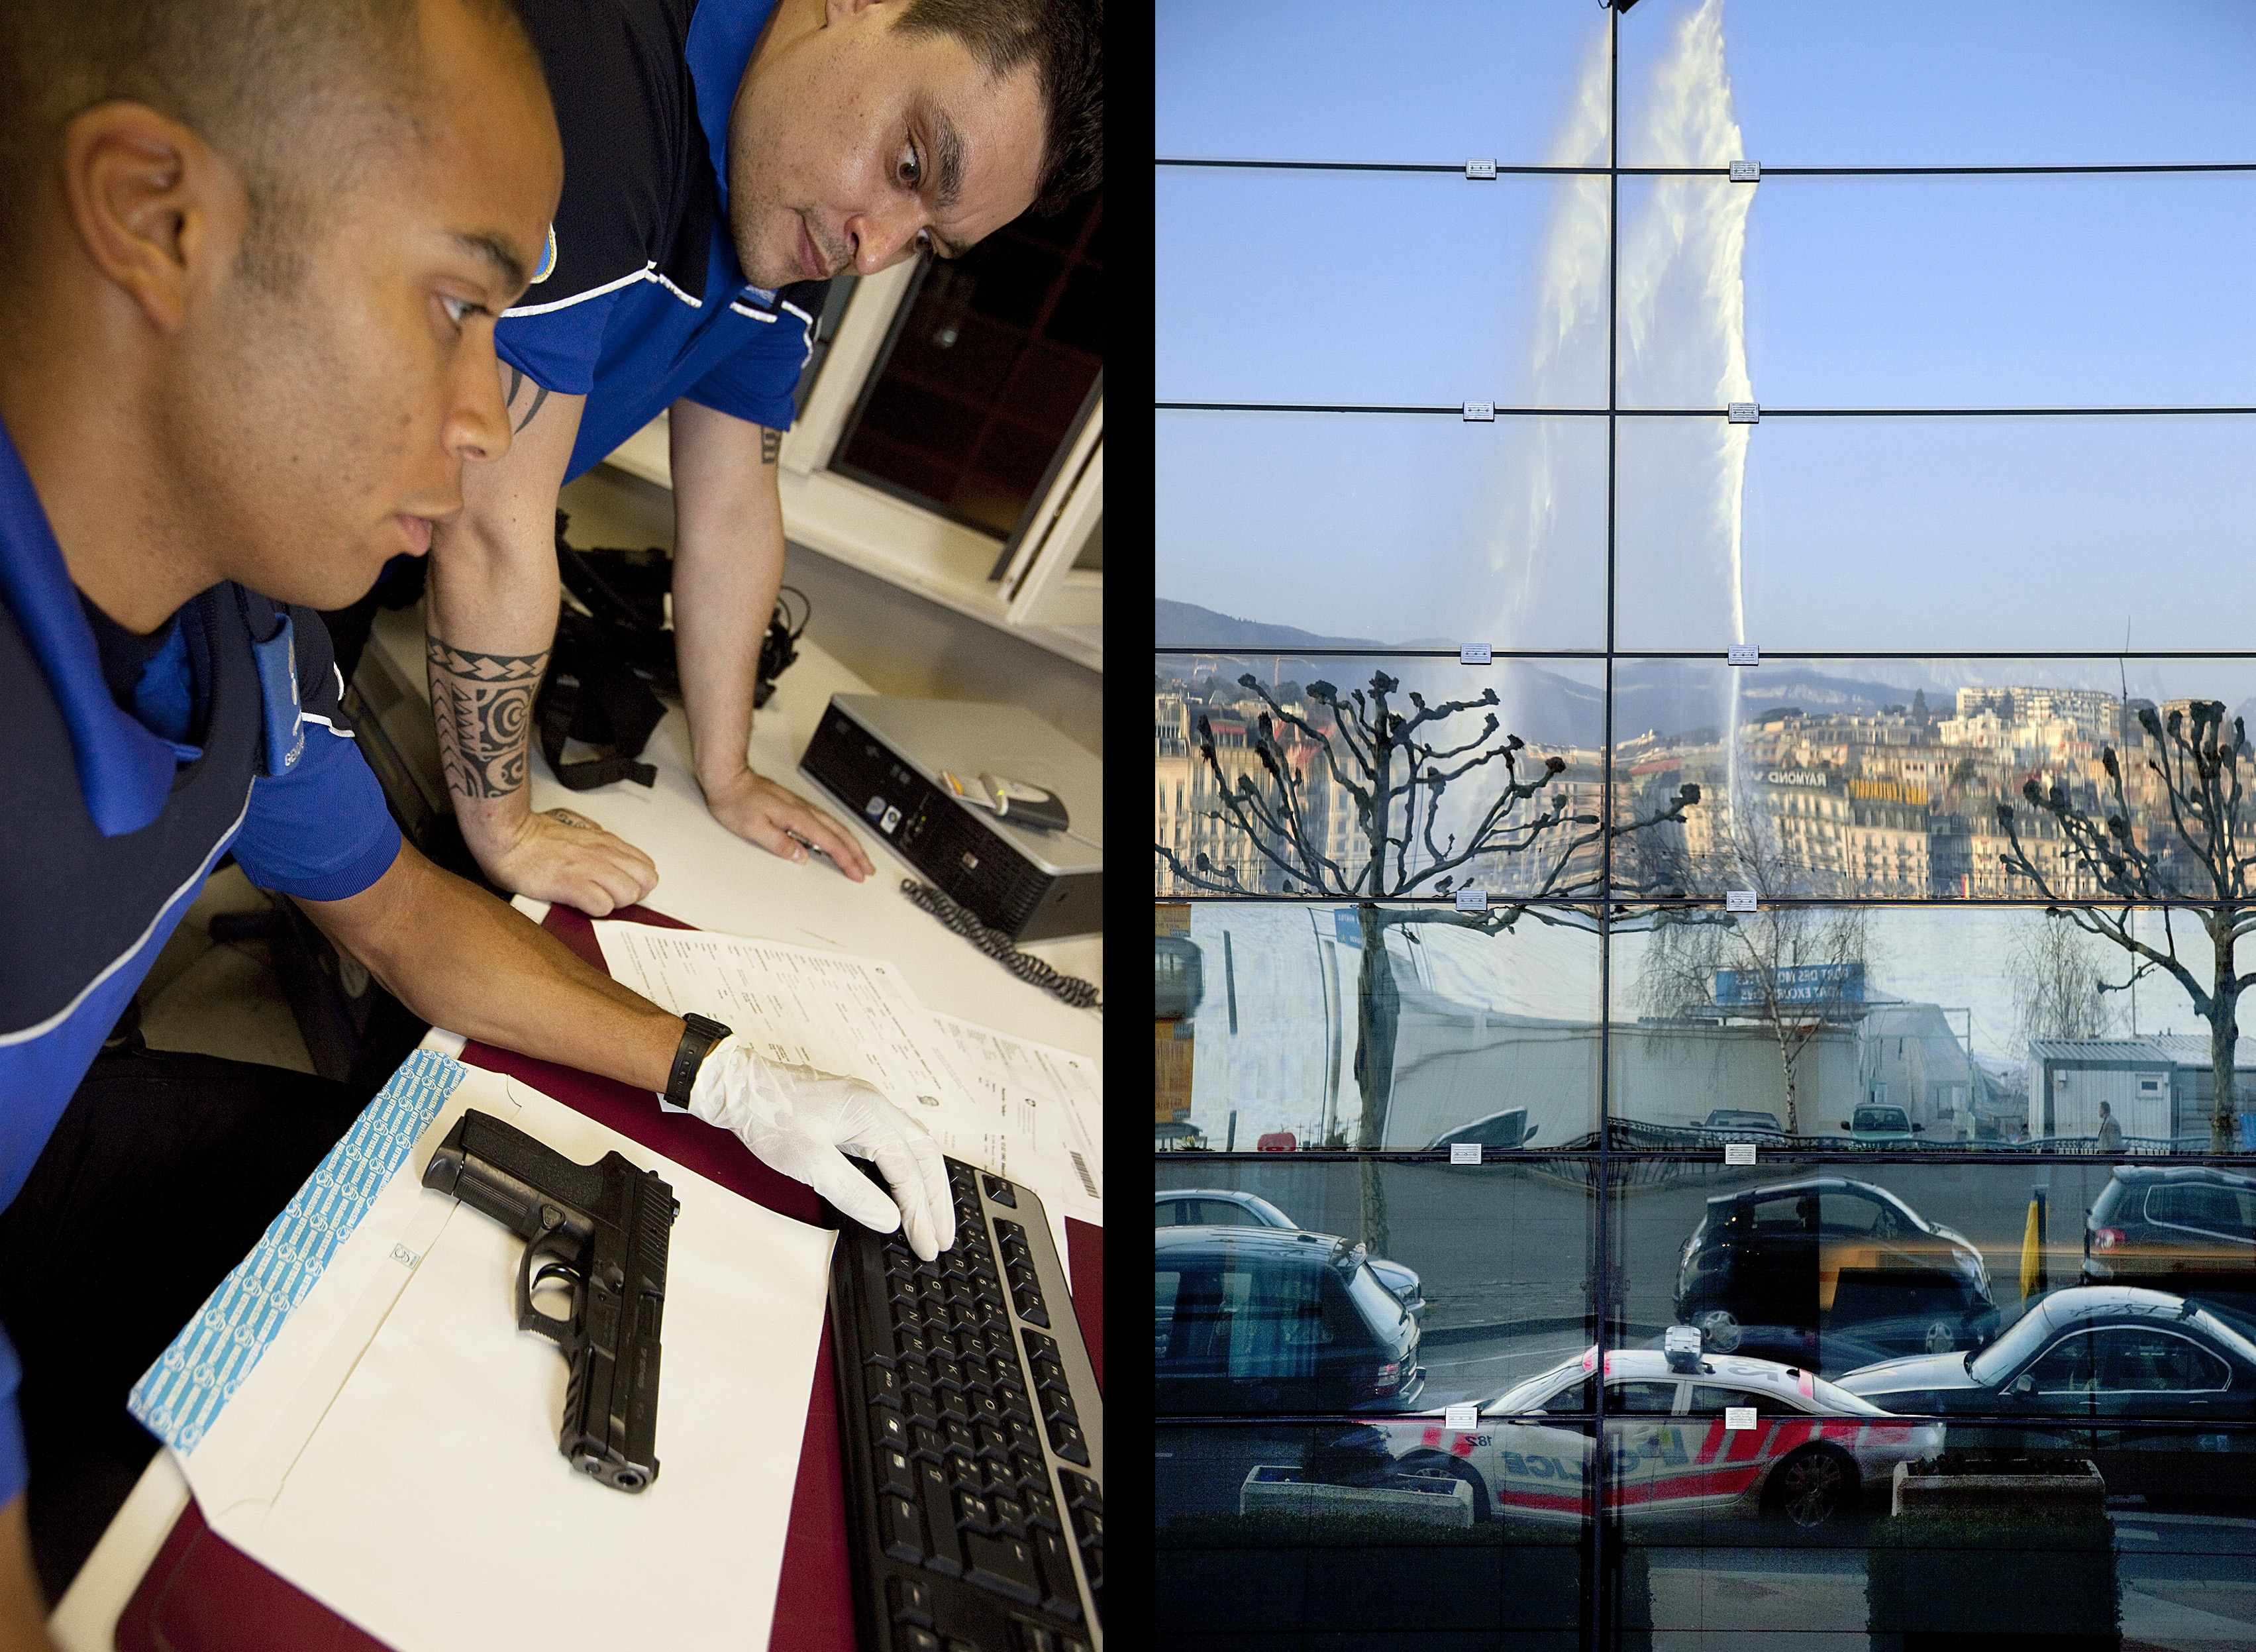 Two officers check the identity of a man arrested in possession of a handgun without a licence (l), and a view of the Geneva Fountain and a police car reflected in the glass facade of the Grand Hotel Kempinski.